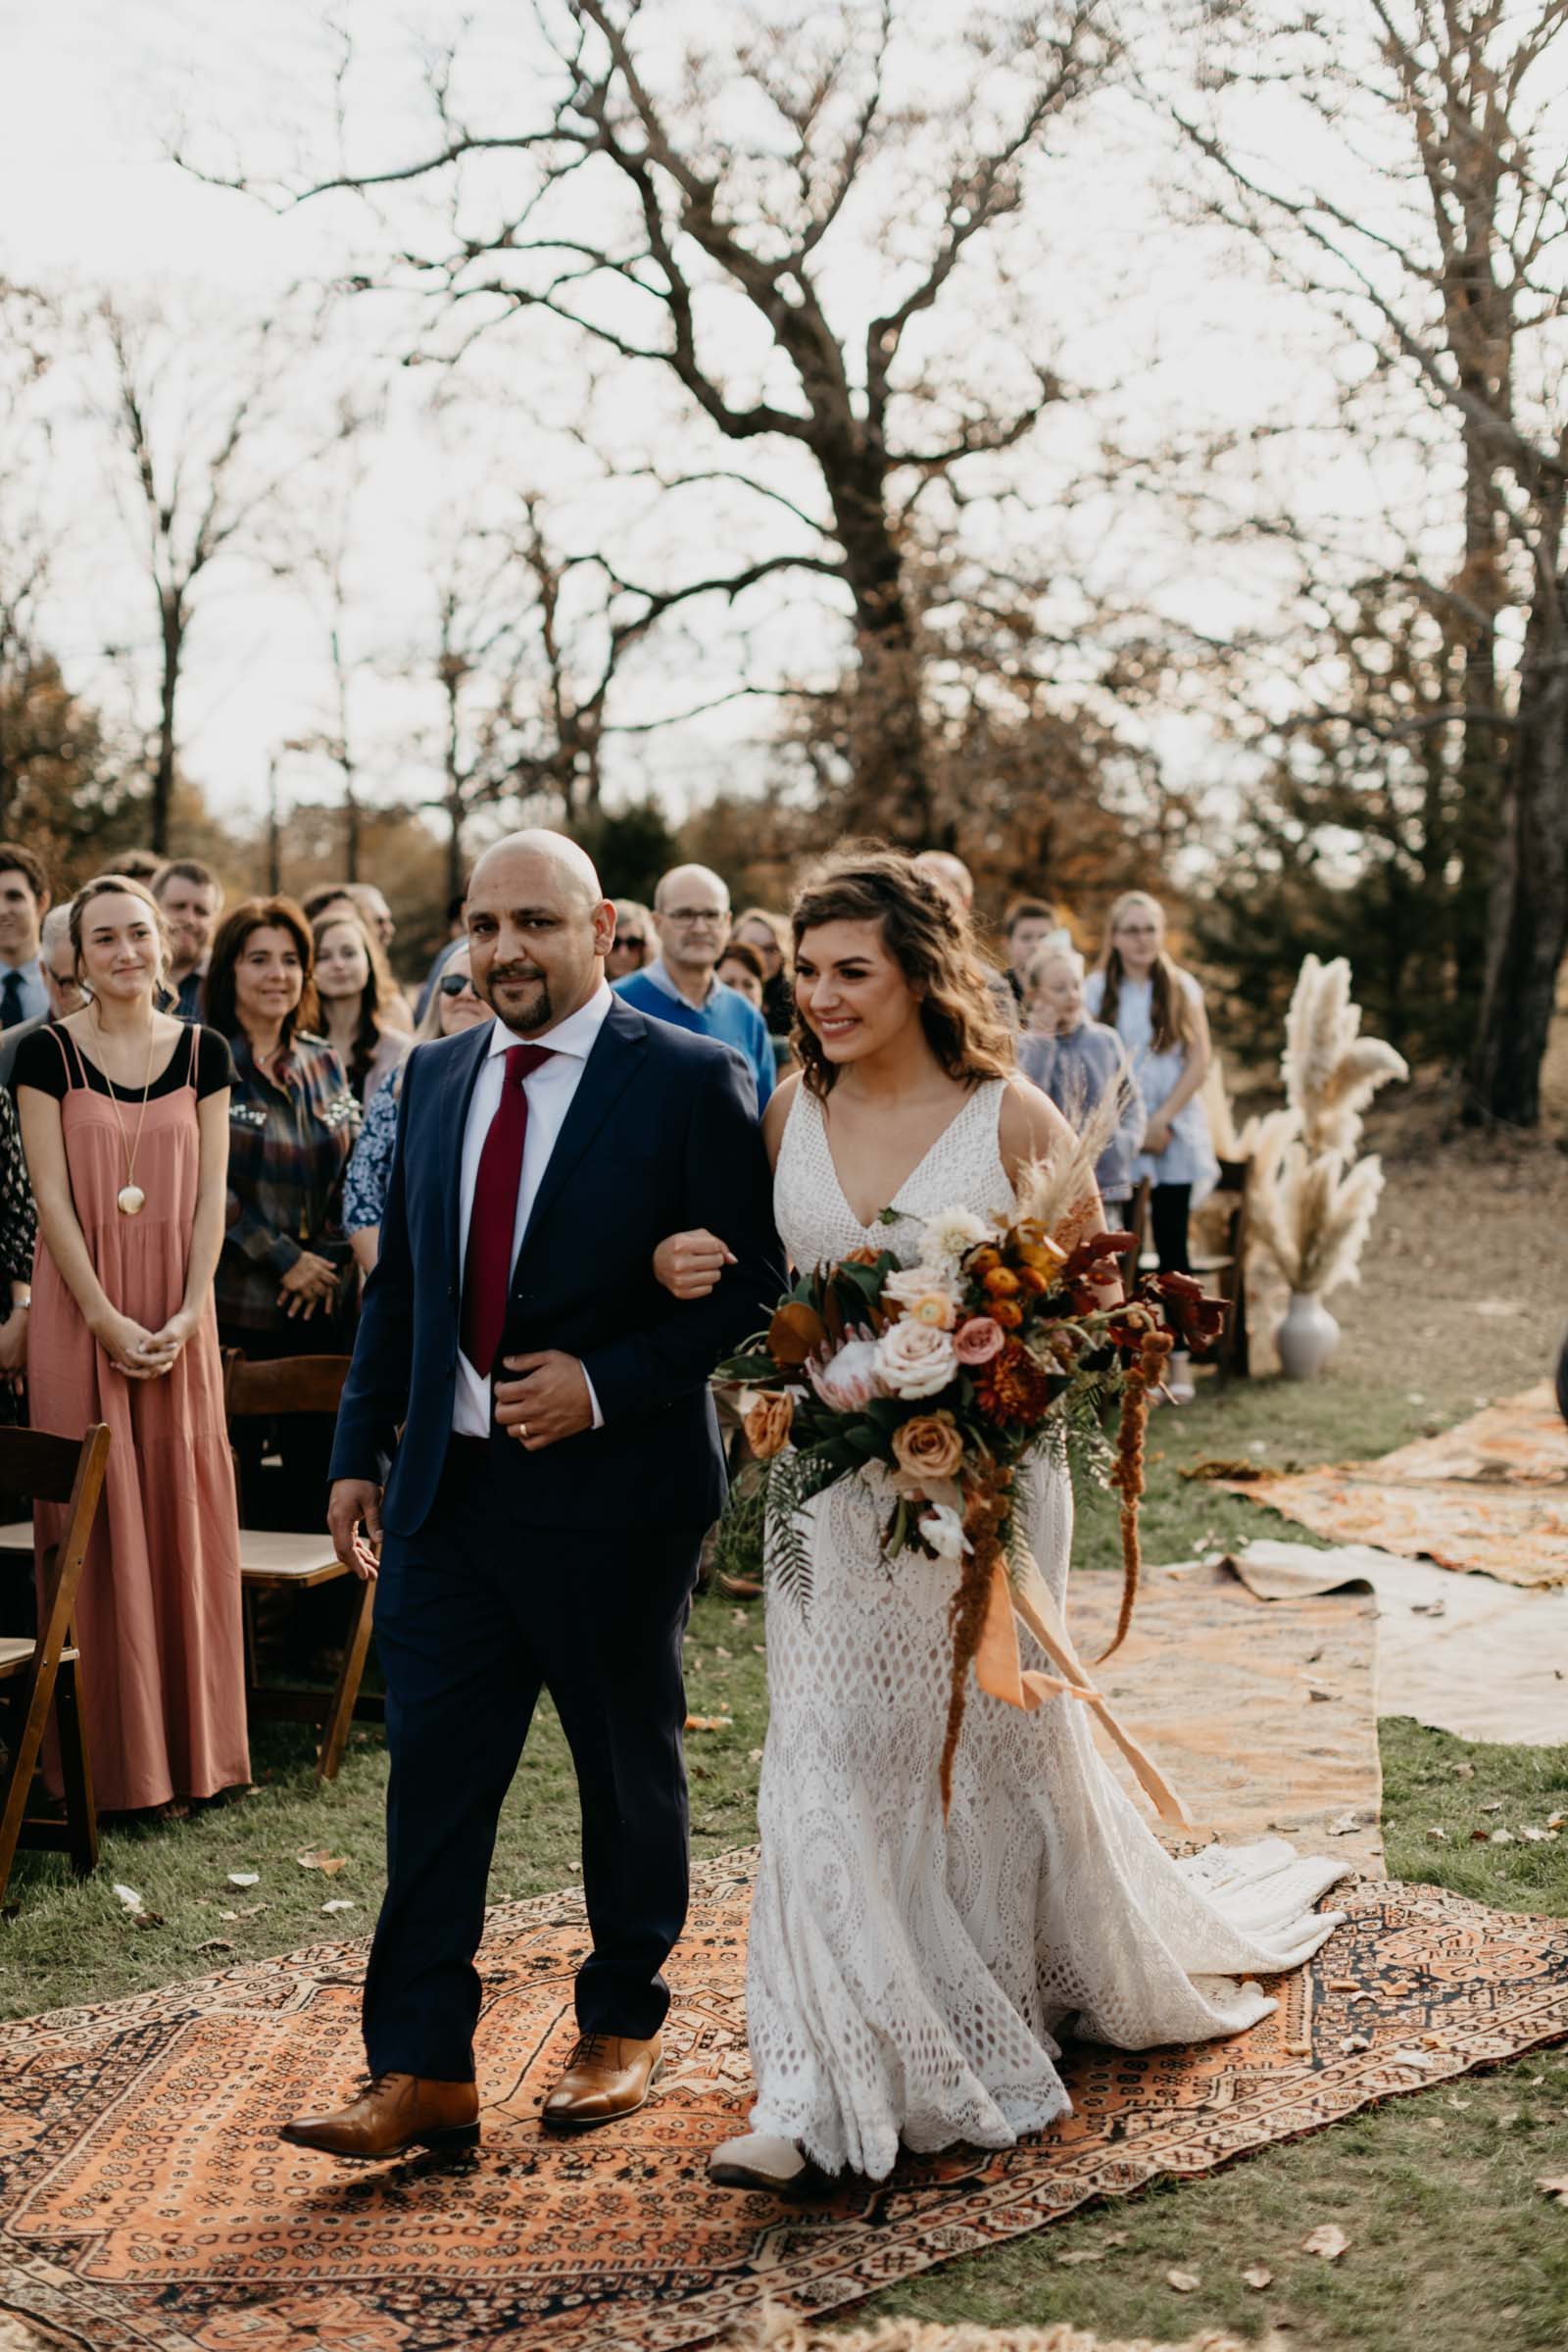 Brides father walking her down the aisle made of bohemian rugs